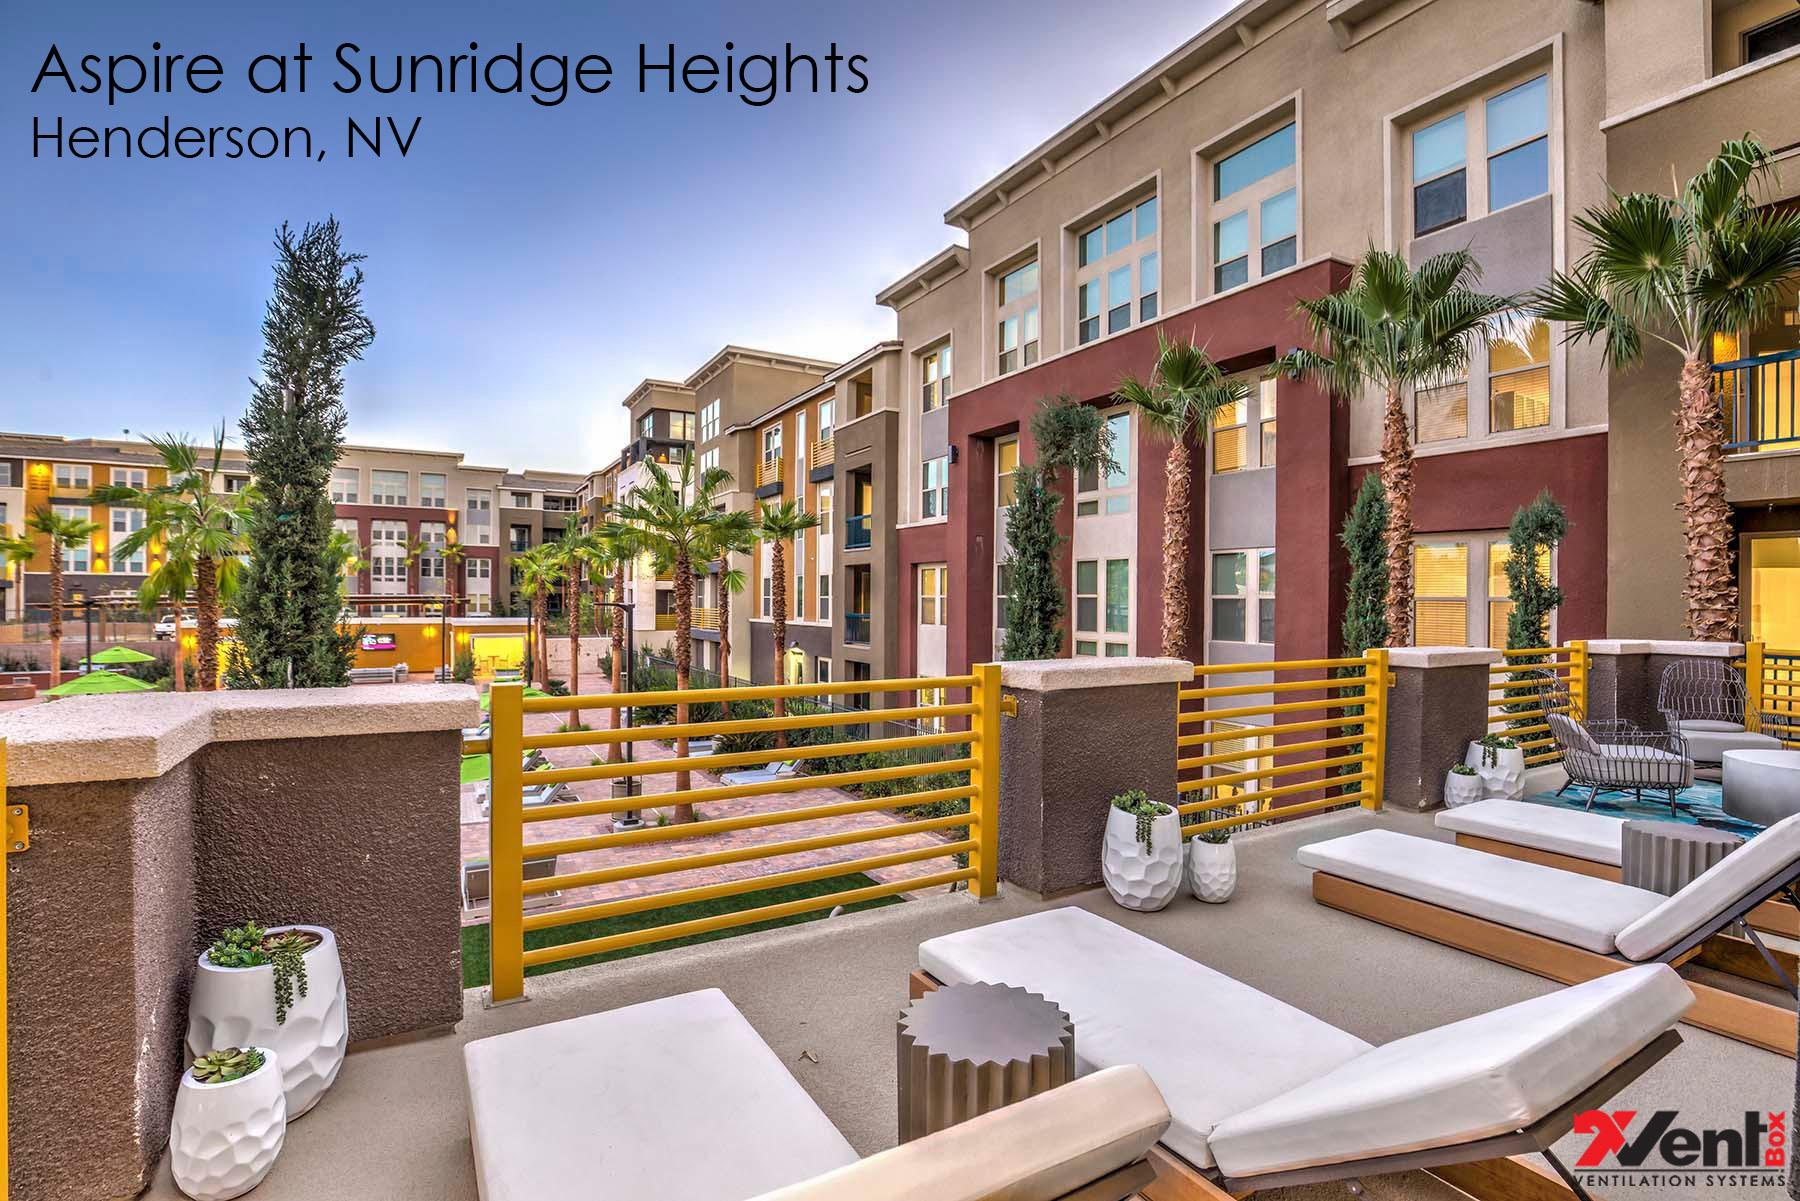 Aspire at Sunridge Heights